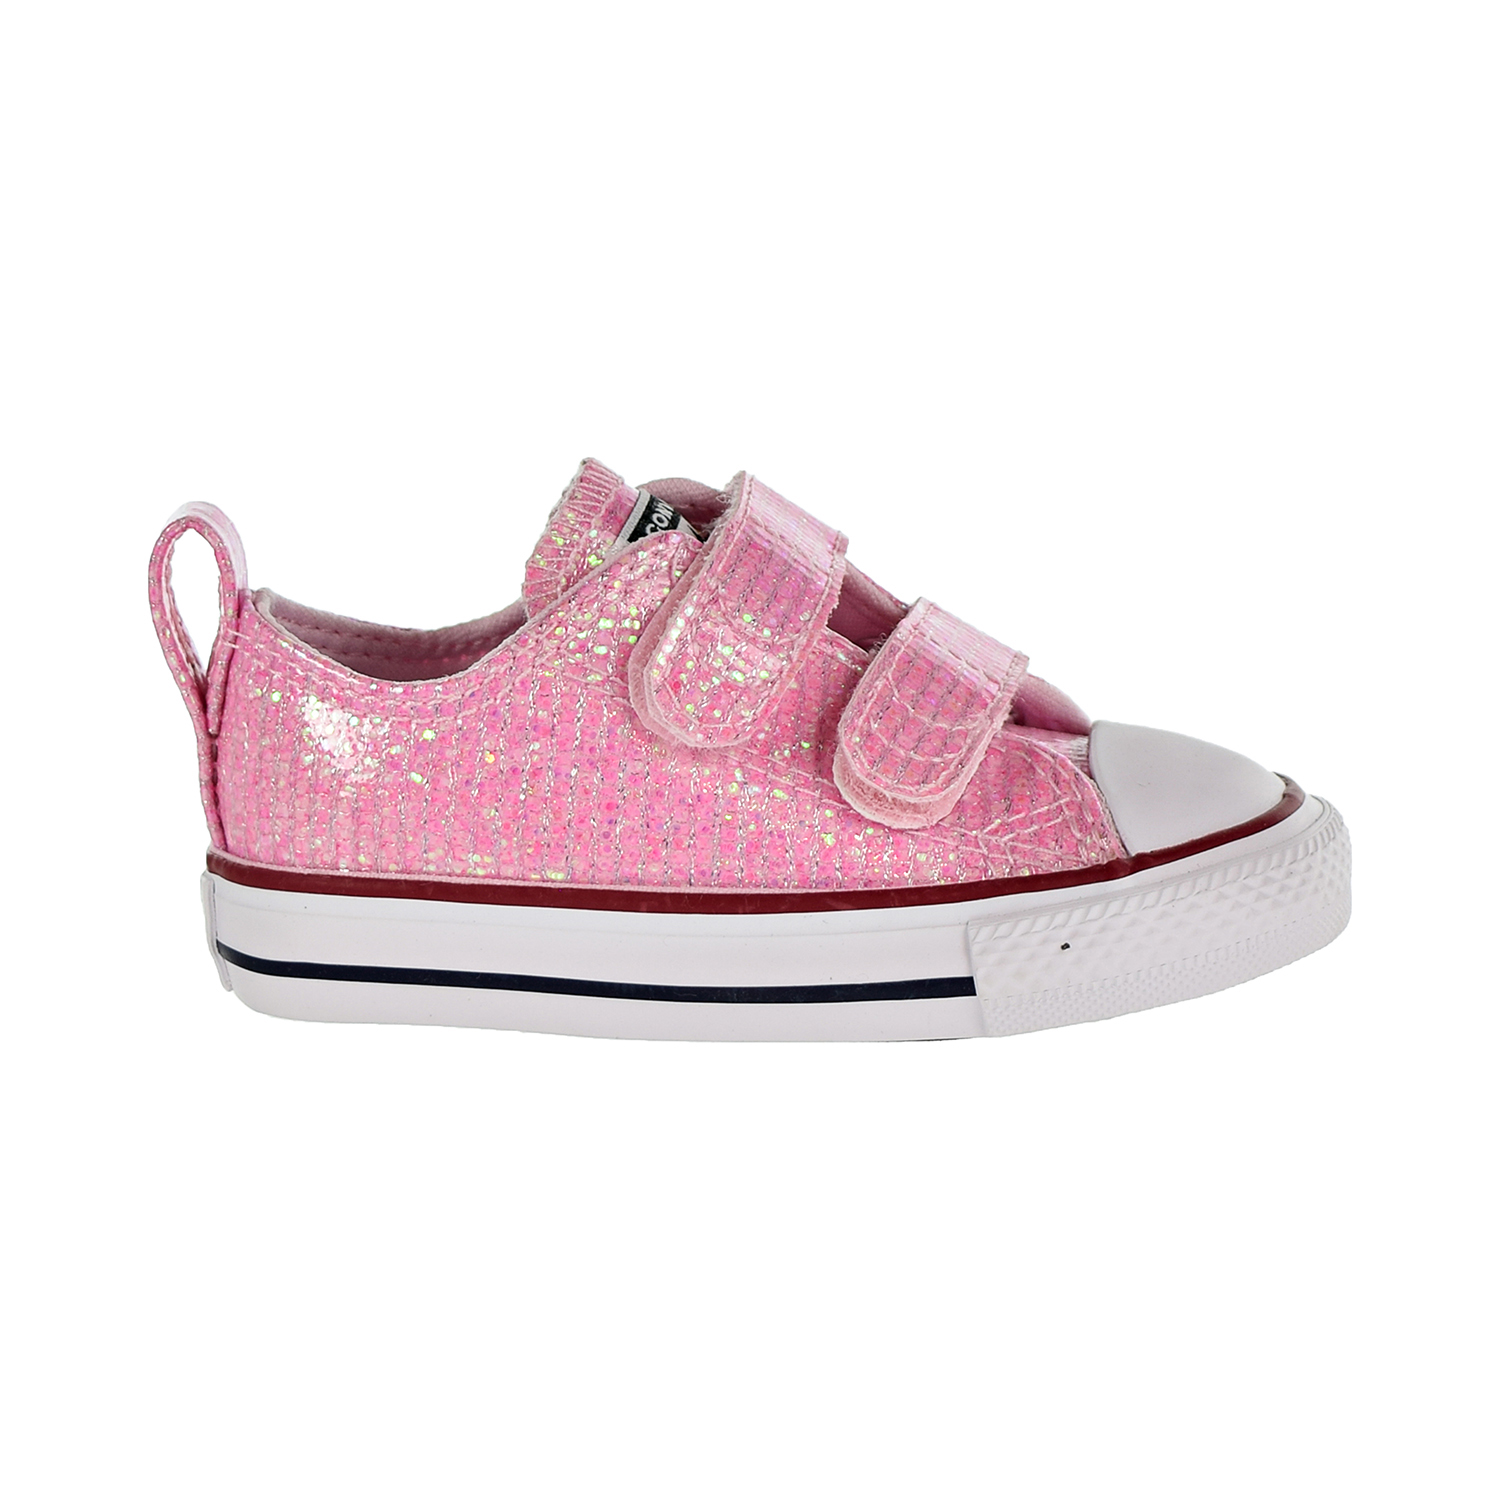 3912ff2269d0 Details about Converse Chuck Taylor All Star 2V Ox Toddler s Shoes Pink  Foam 763550C